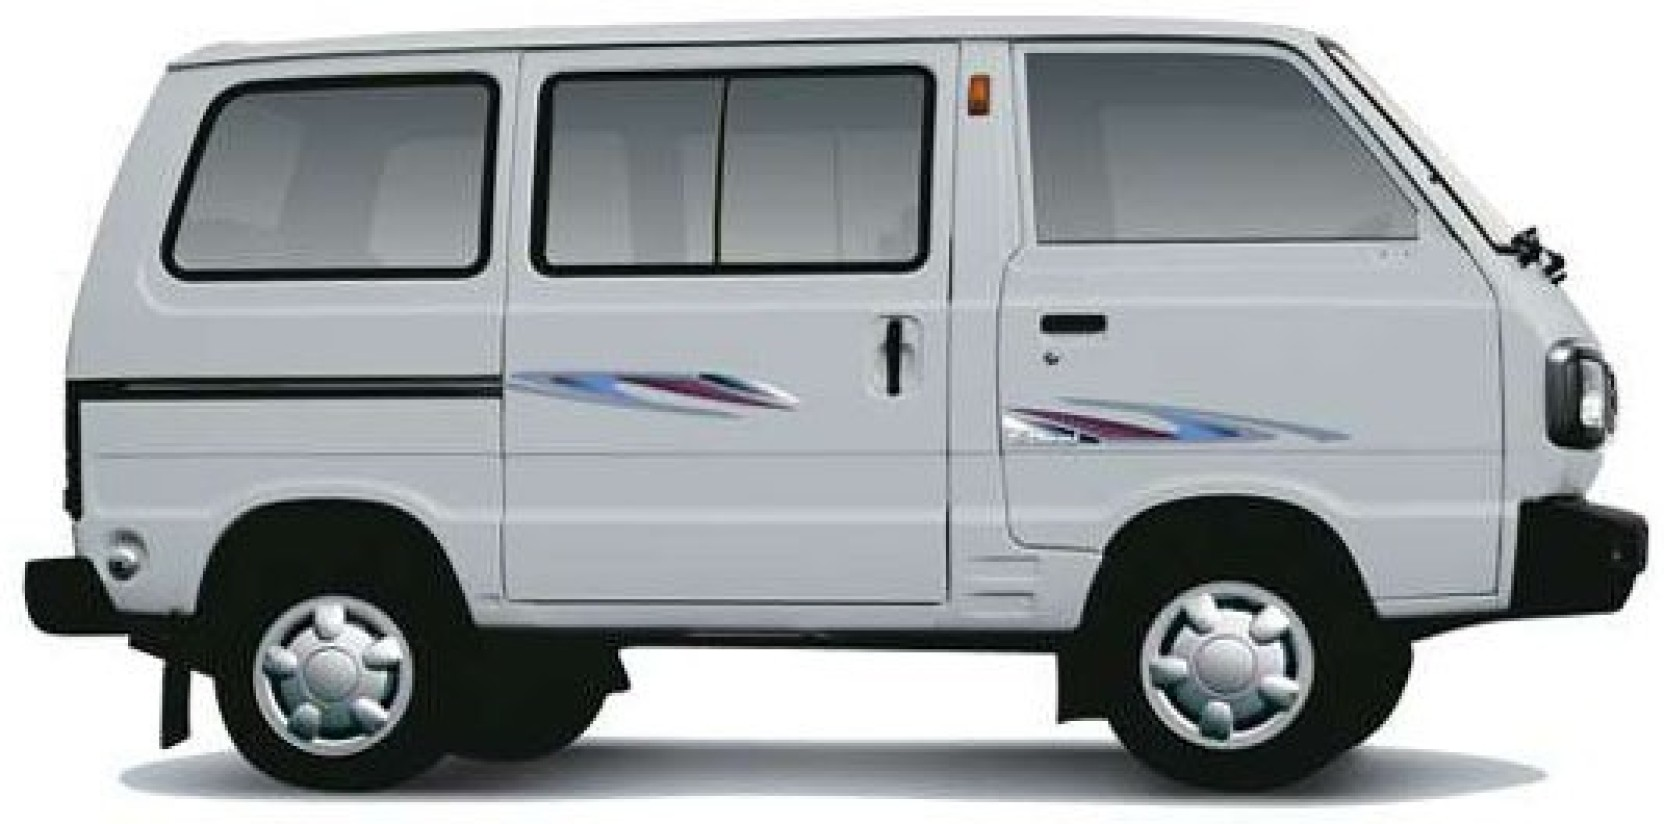 Maruti Suzuki Omni 8 Seater Met (Ex-showroom price starting from Rs  2,85,811) (Book for Rs 10,000)